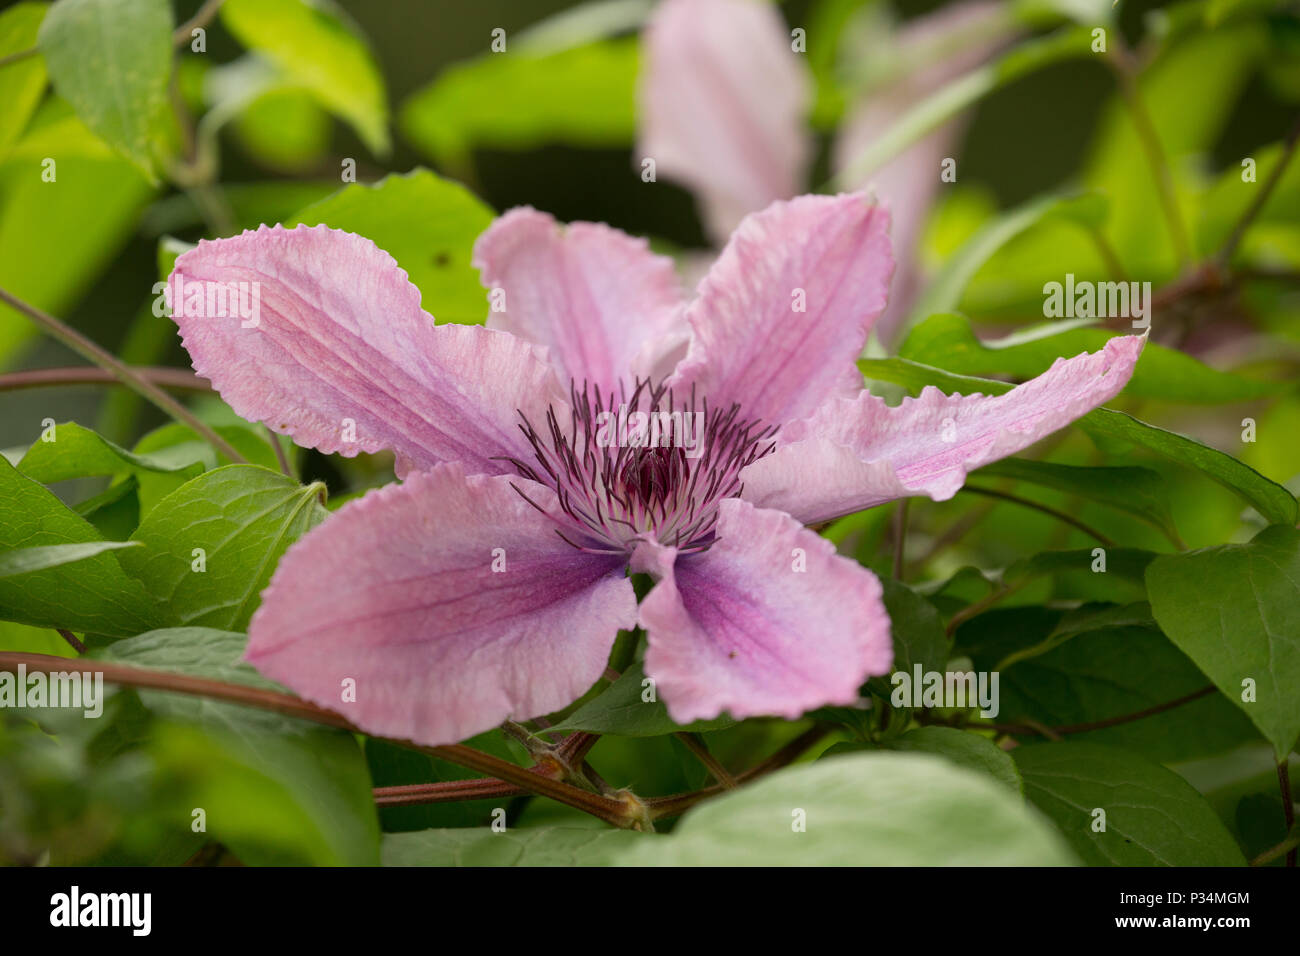 Hybrid clematis Hagley Hybrid growing in a garden in Lancashire North West England UK GB. - Stock Image